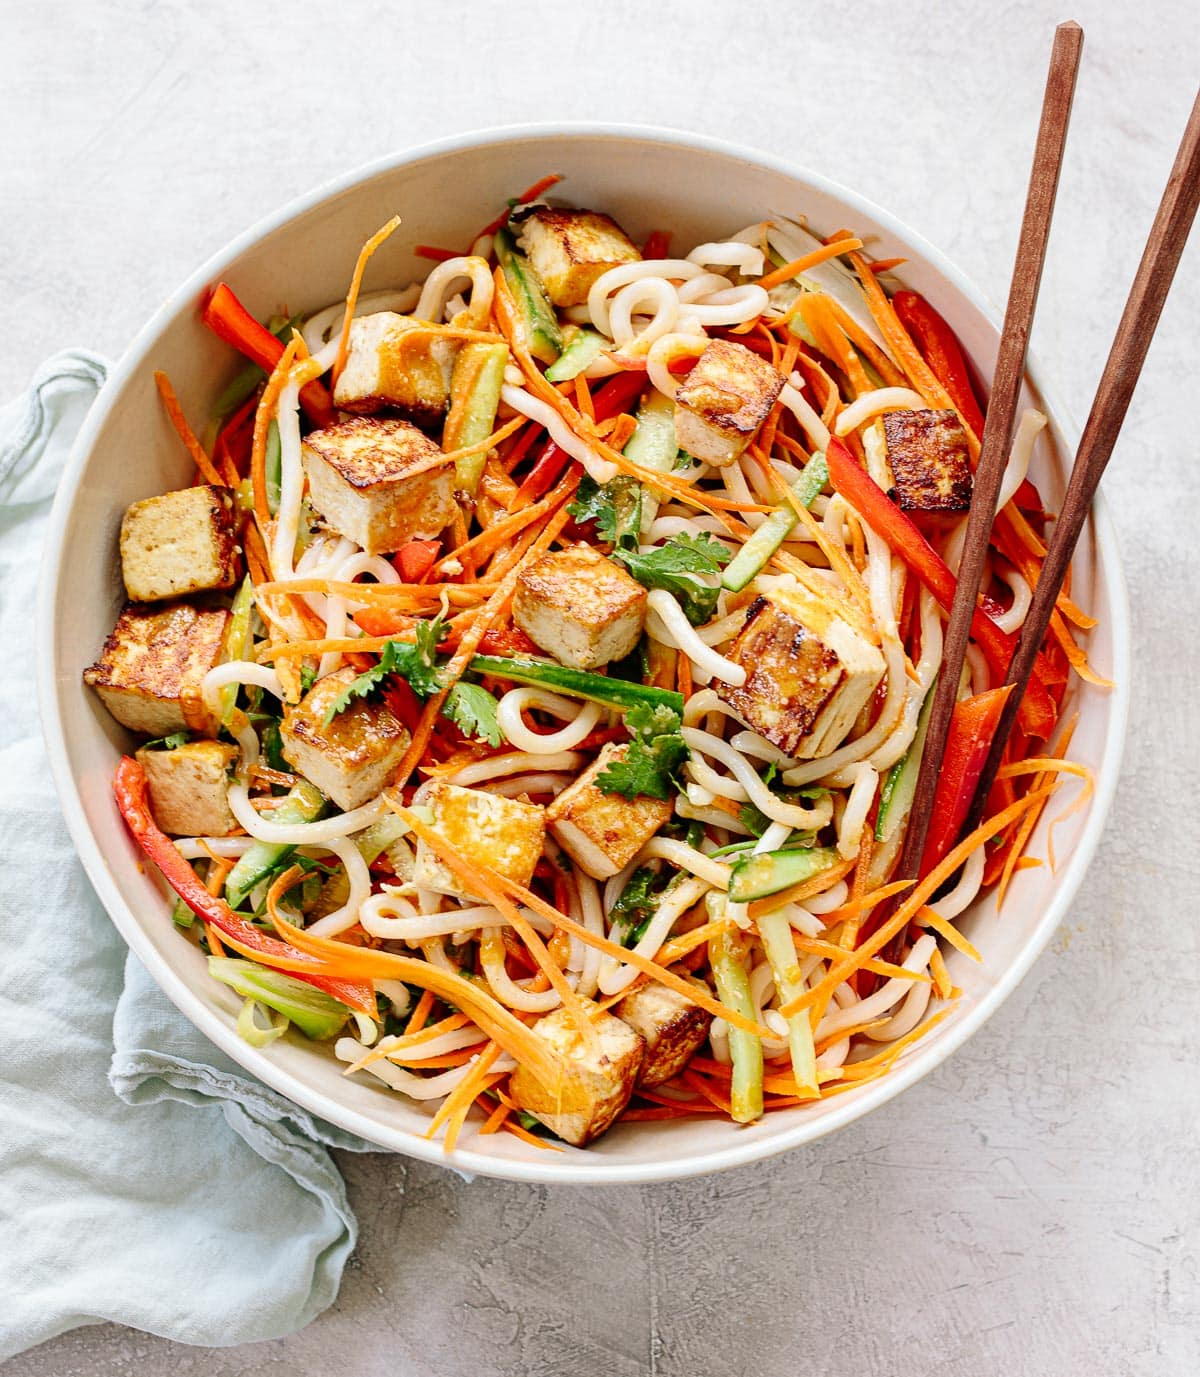 Vegetarian Noodle Bowl With Tofu Familystyle Food